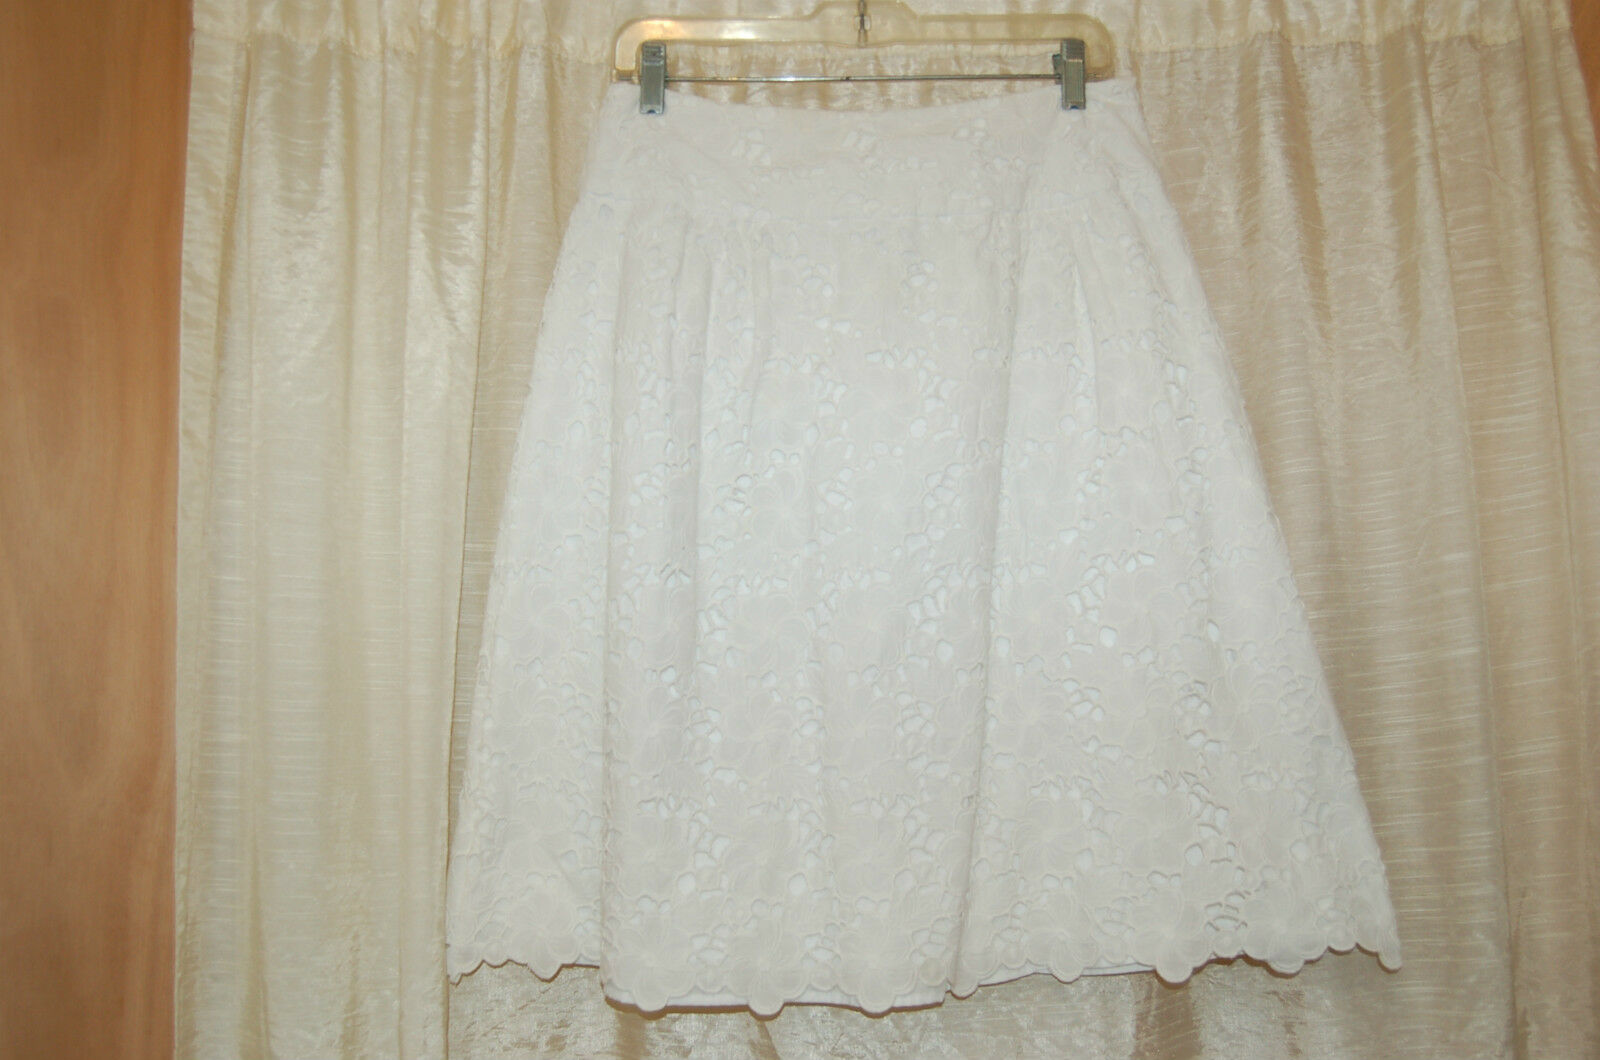 Lilly Pulitzer White Cotton Eyelet Skirt Size 6  Excellent